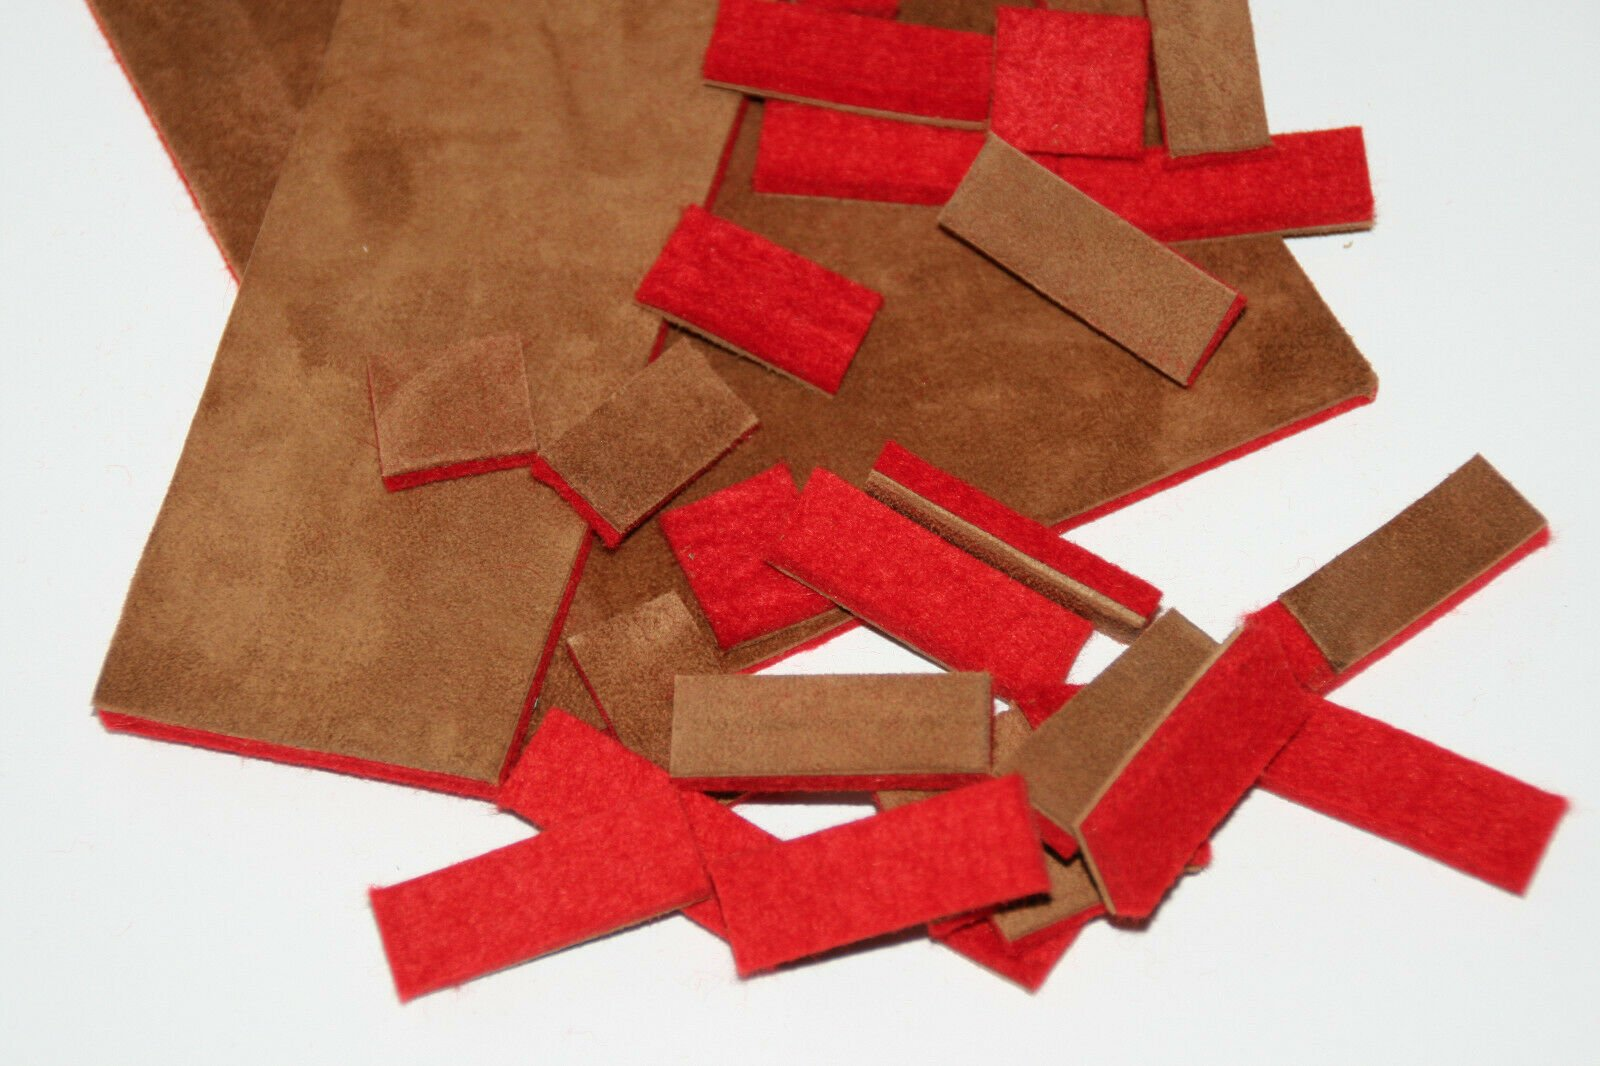 New Accordion Part - Combination Pad Material 6x3 (5cm x 7.5cm) Felt (5mm) and Suede (1mm)